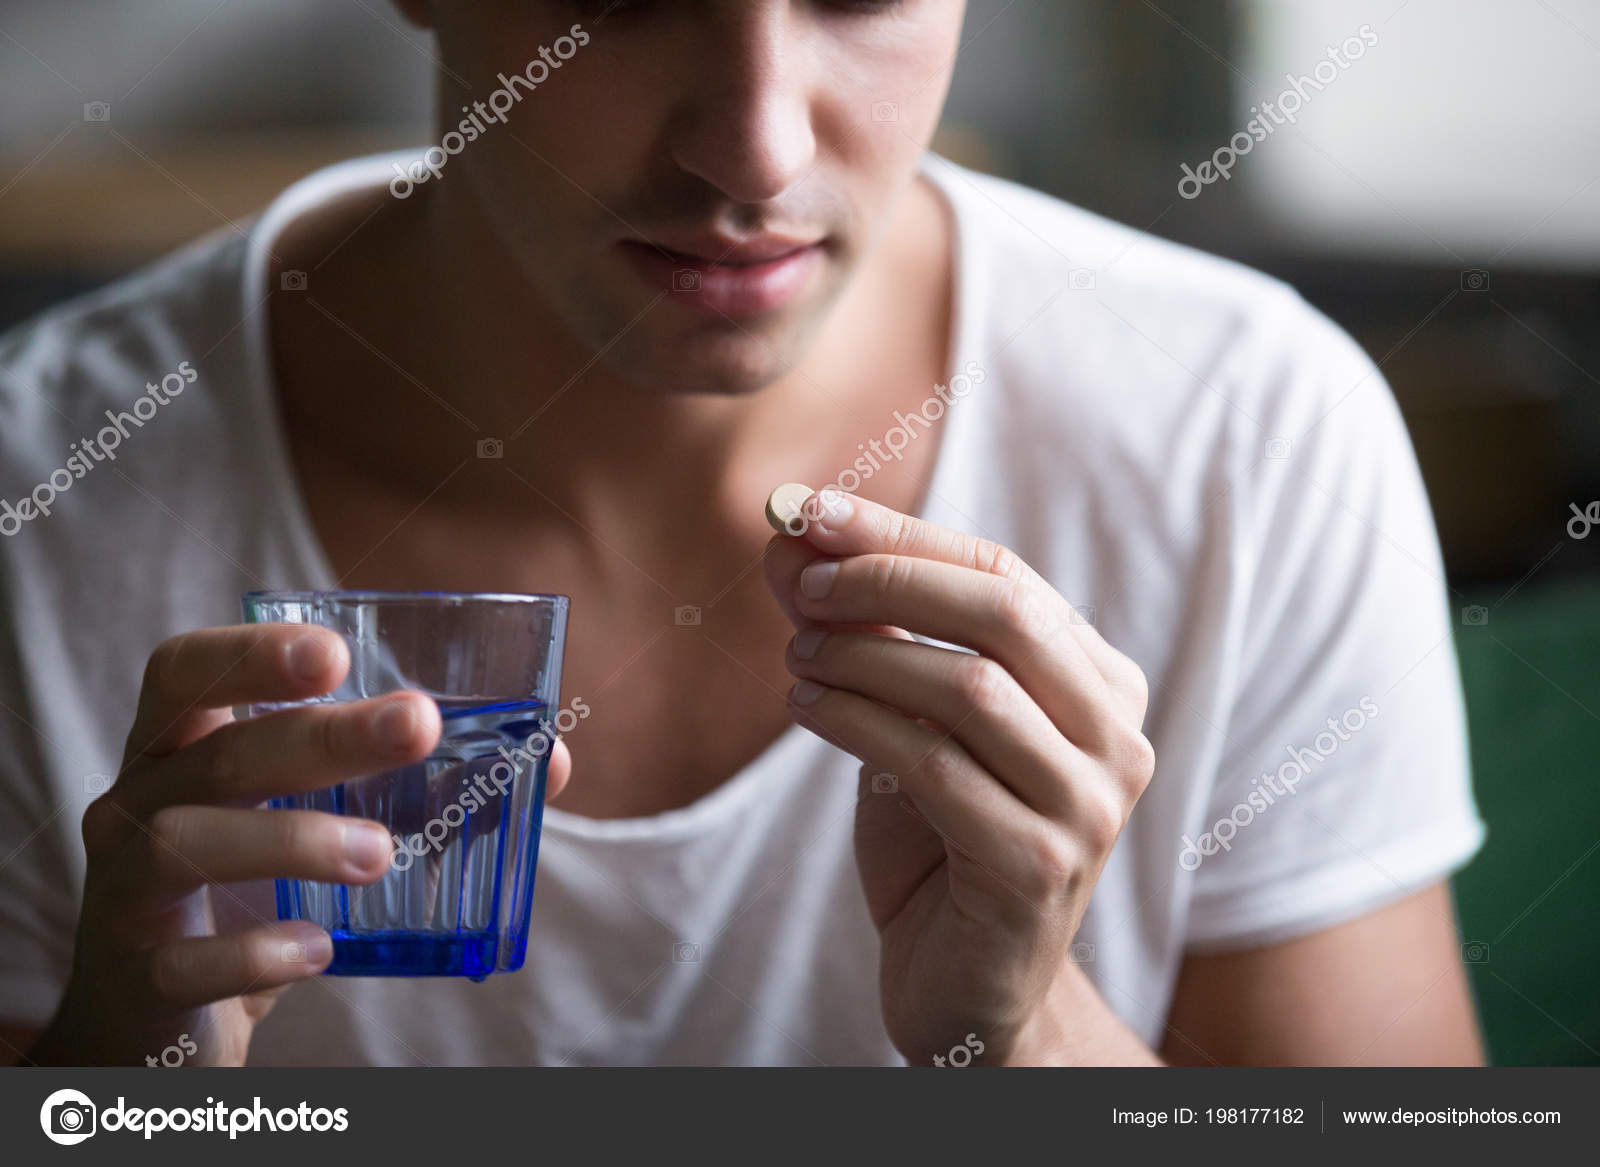 Sick Ill Depressed Man Holding Glof Water Taking Pill Suffering From Headache Fighting Stress With Antidepressant Drugs Meds Painkillers To Relieve